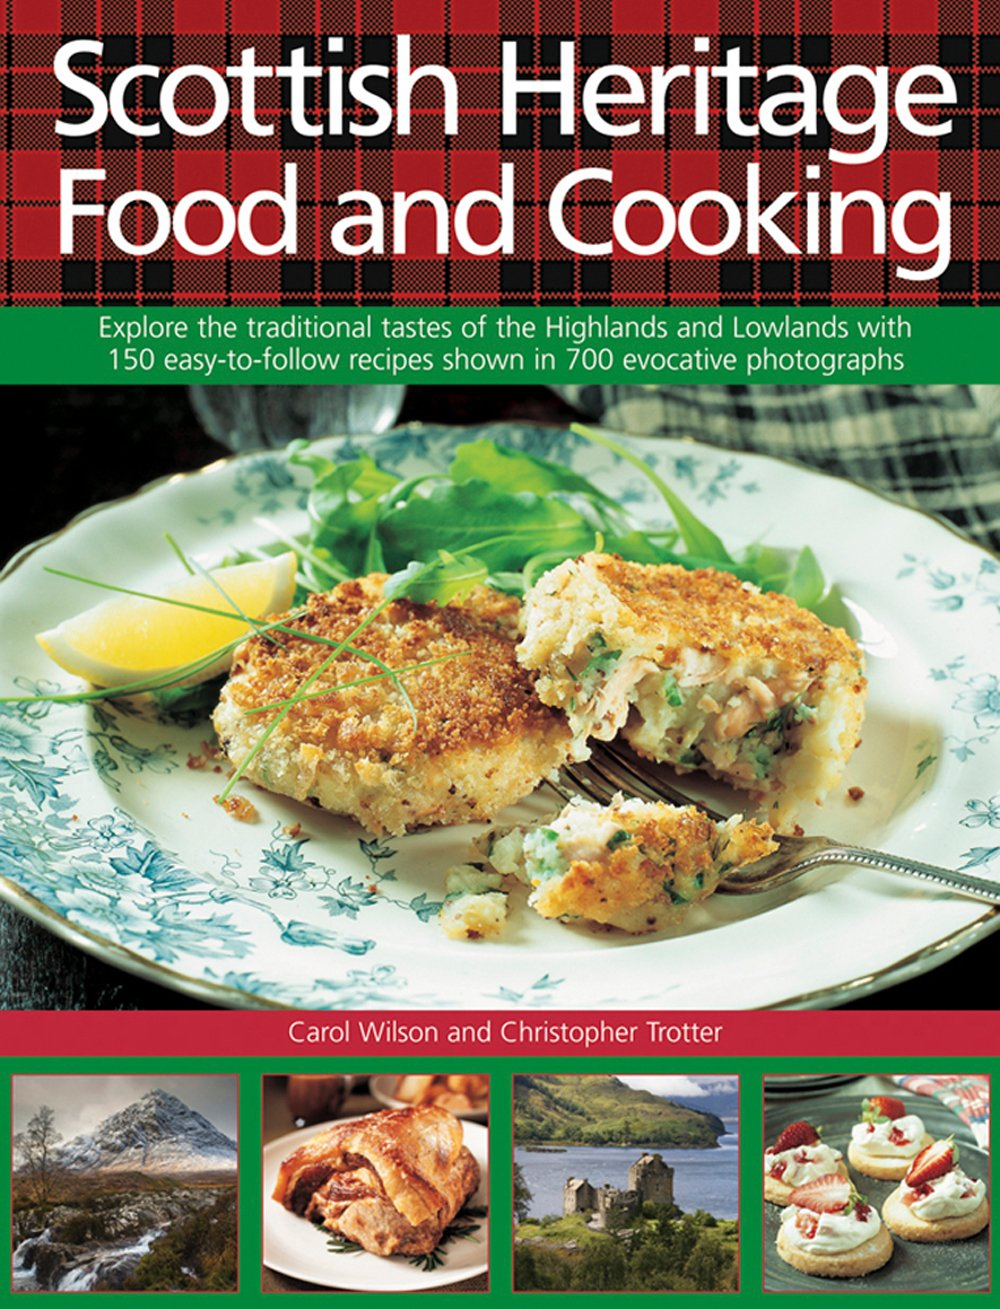 Scottish heritage food and cooking explore the traditional tastes scottish heritage food and cooking explore the traditional tastes of the highlands and lowlands with 150 easy to follow recipes shown in 700 evocative forumfinder